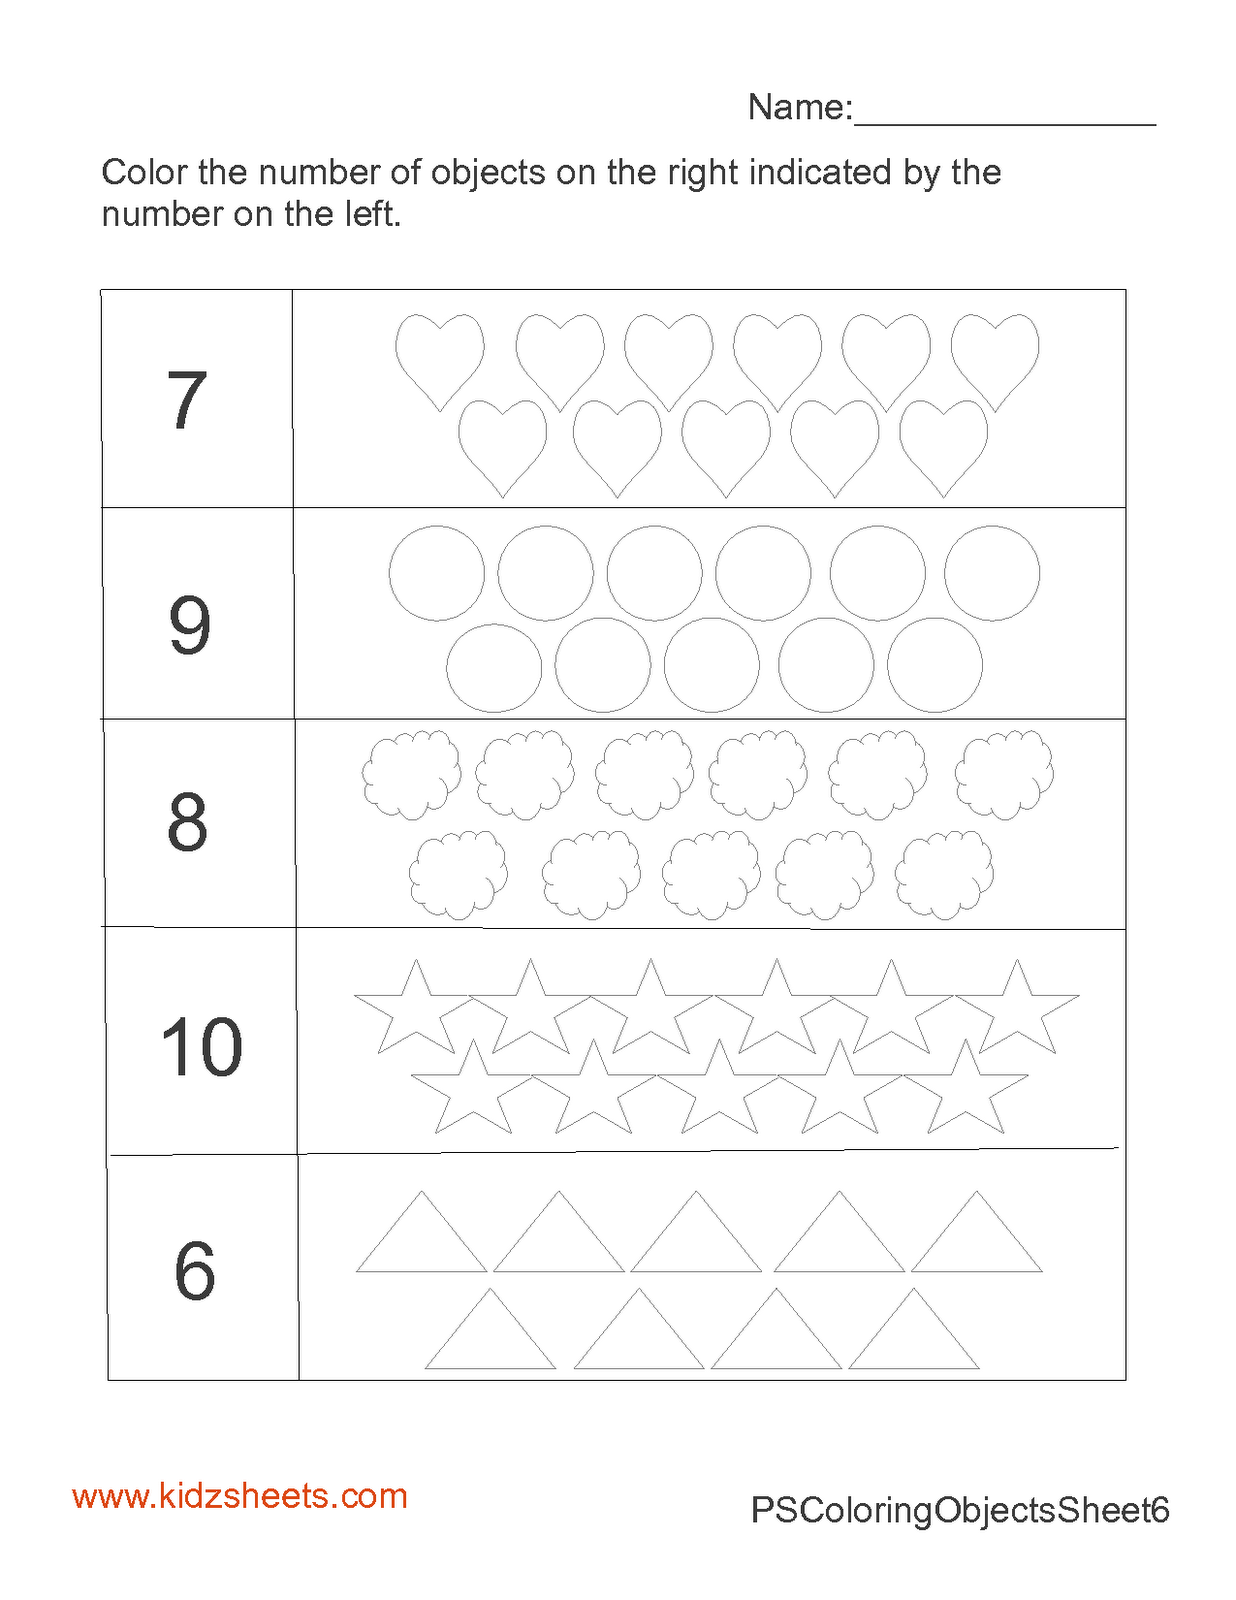 Kidz Worksheets Preschool Count Amp Color 6 10 Worksheet1